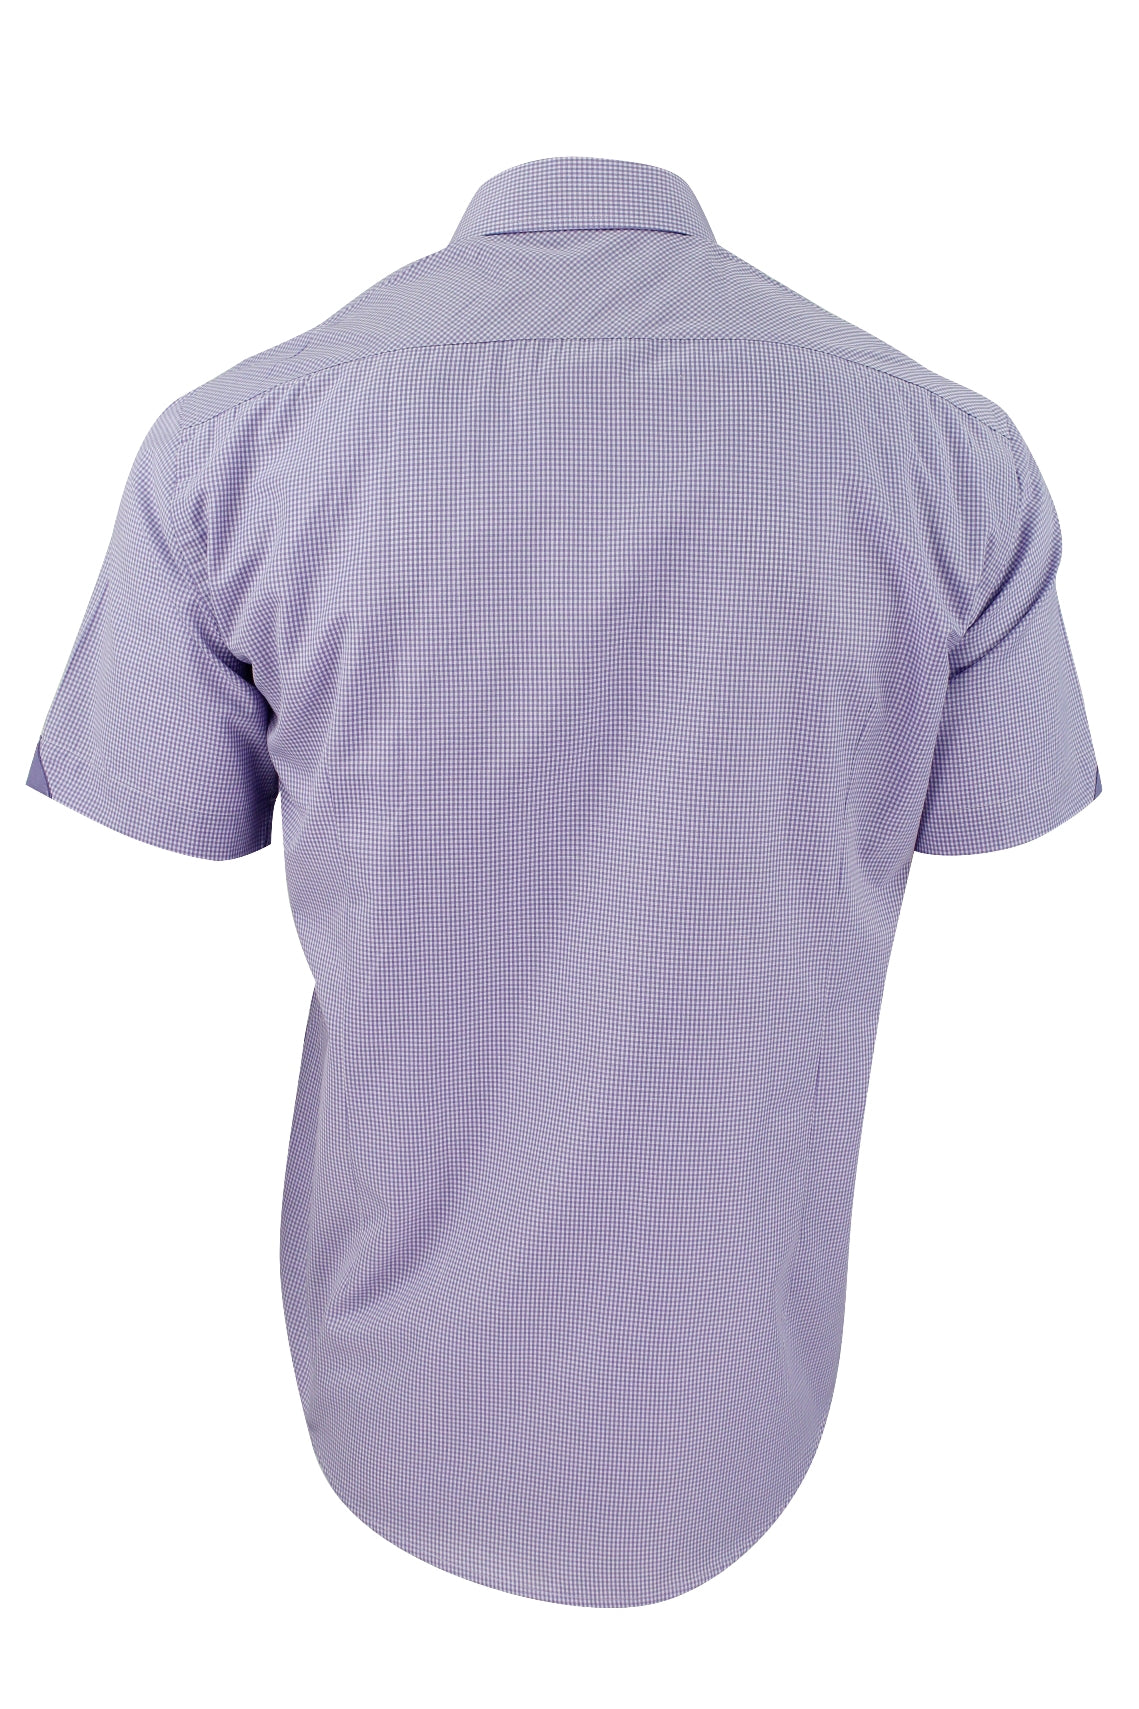 Mens Short Sleeved Shirt by Xact Clothing Micro Gingham Check_03_1510114_Lilac